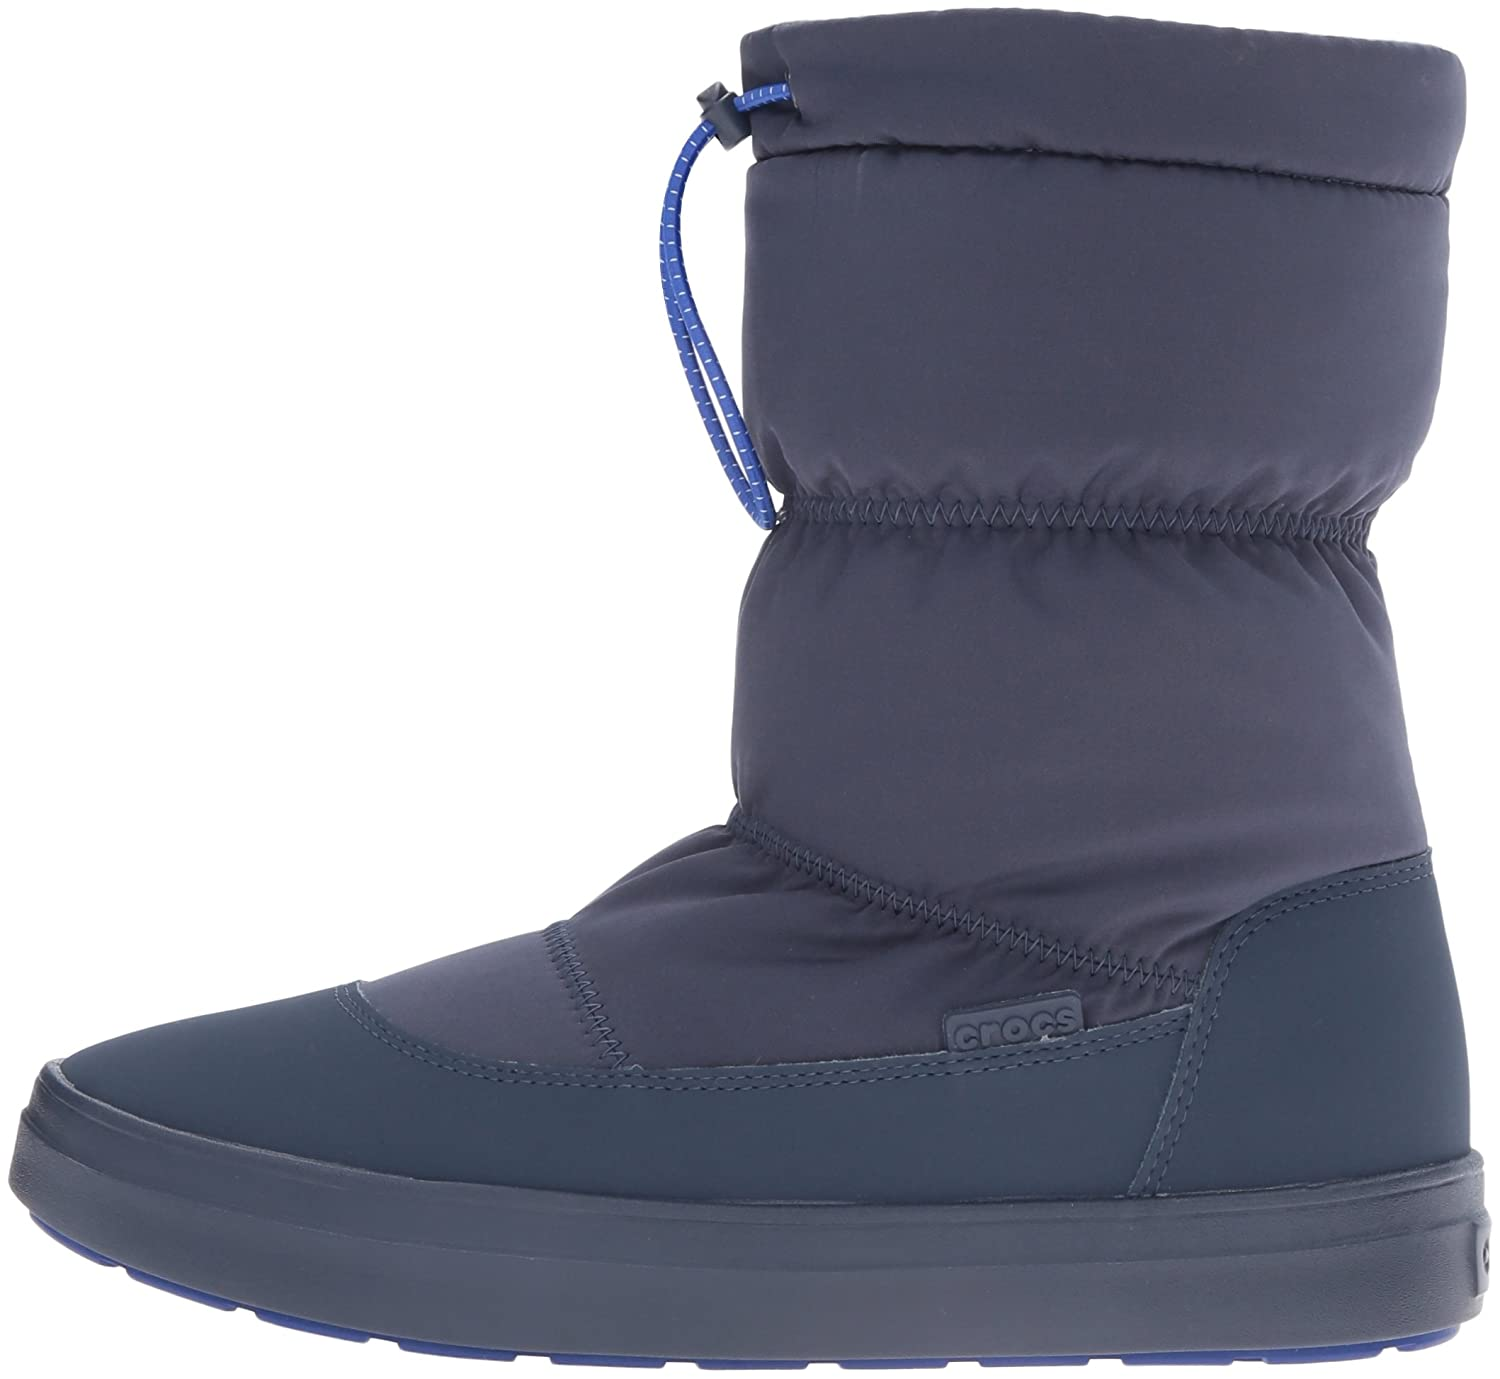 Crocs Women's Lodge Point Pull-On Snow Boot B01A6LMT6K 9 B(M) US|Navy